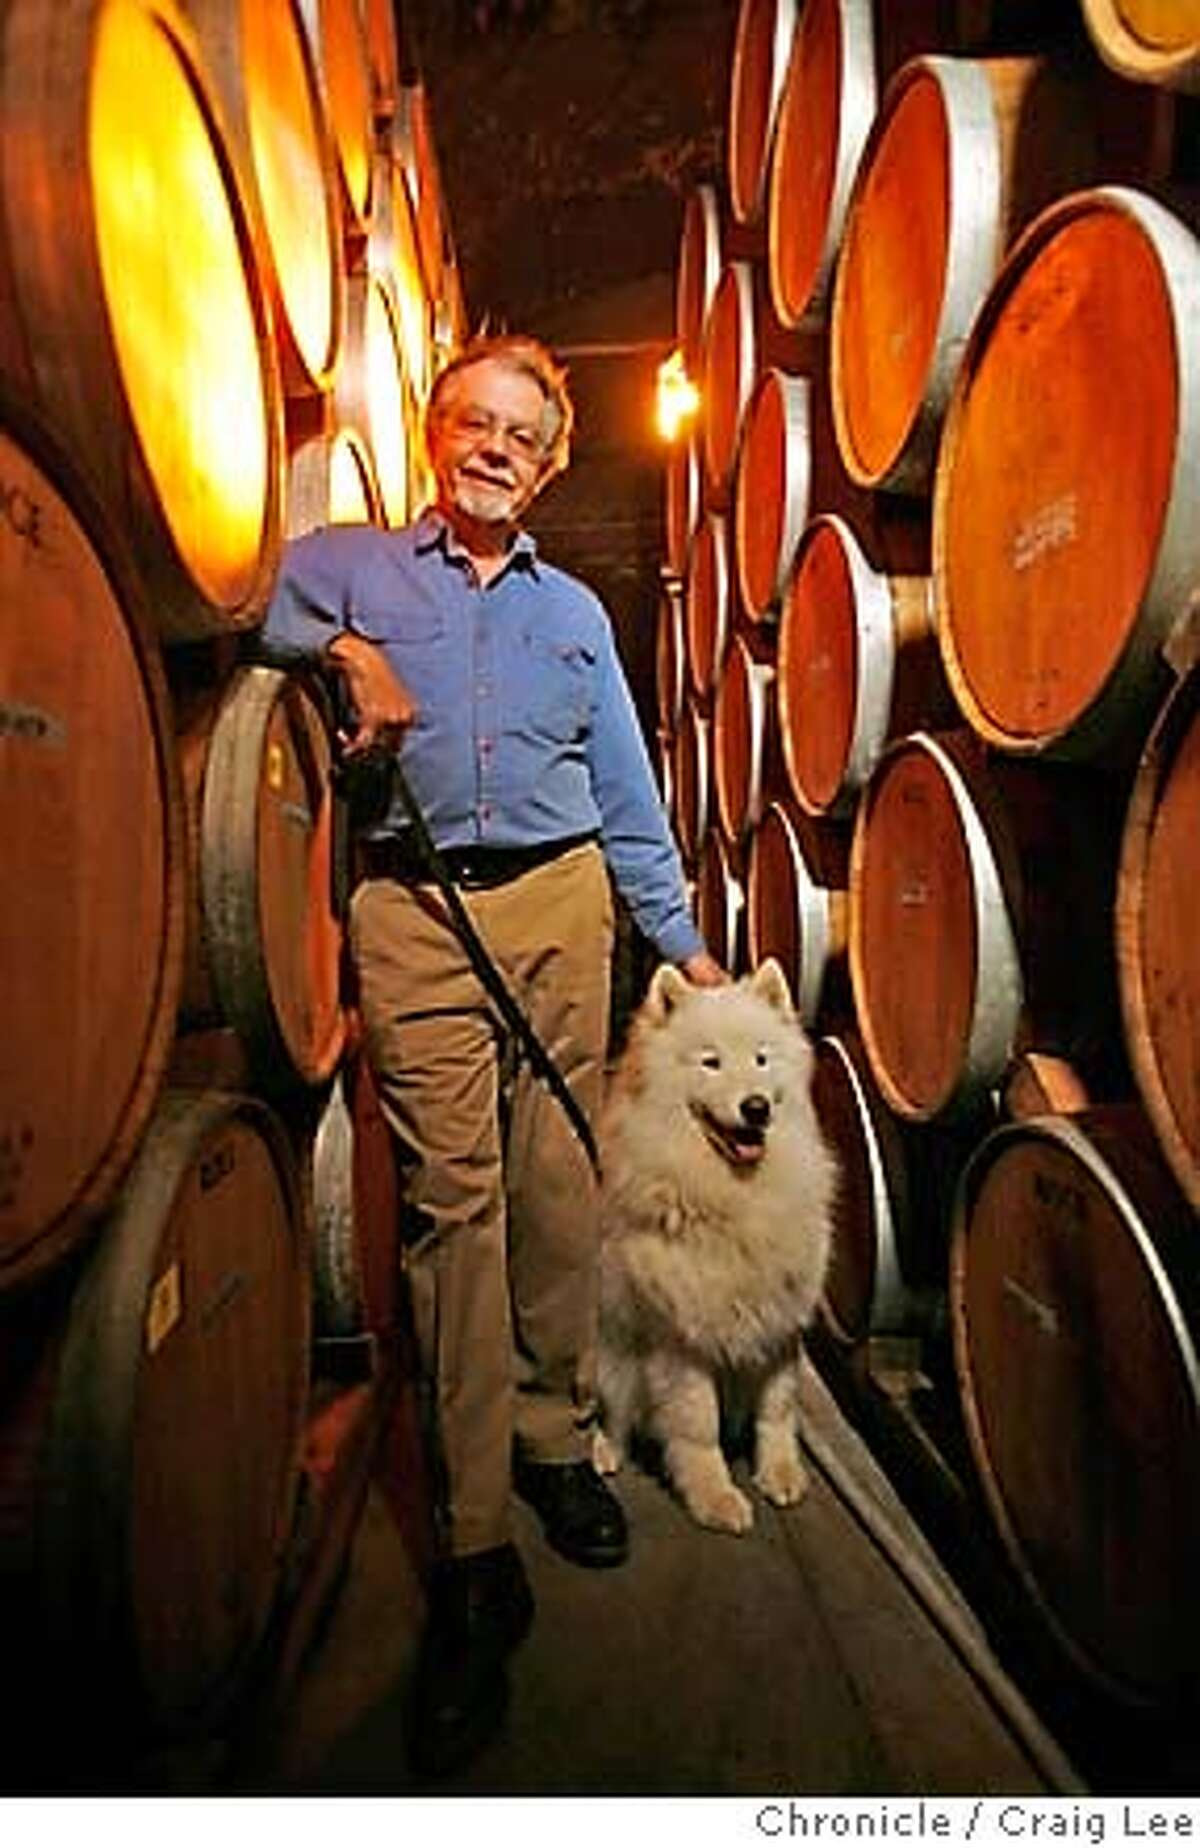 WINEMAKER08_237_cl.JPG Paul Draper, winemaker for Ridge Winery. His dog, Bodhi, is with him. Photo in the cellar. Event on 12/5/06 in Cupertino. MANDATORY CREDIT FOR PHOTOG AND SF CHRONICLE/ -MAGS OUT